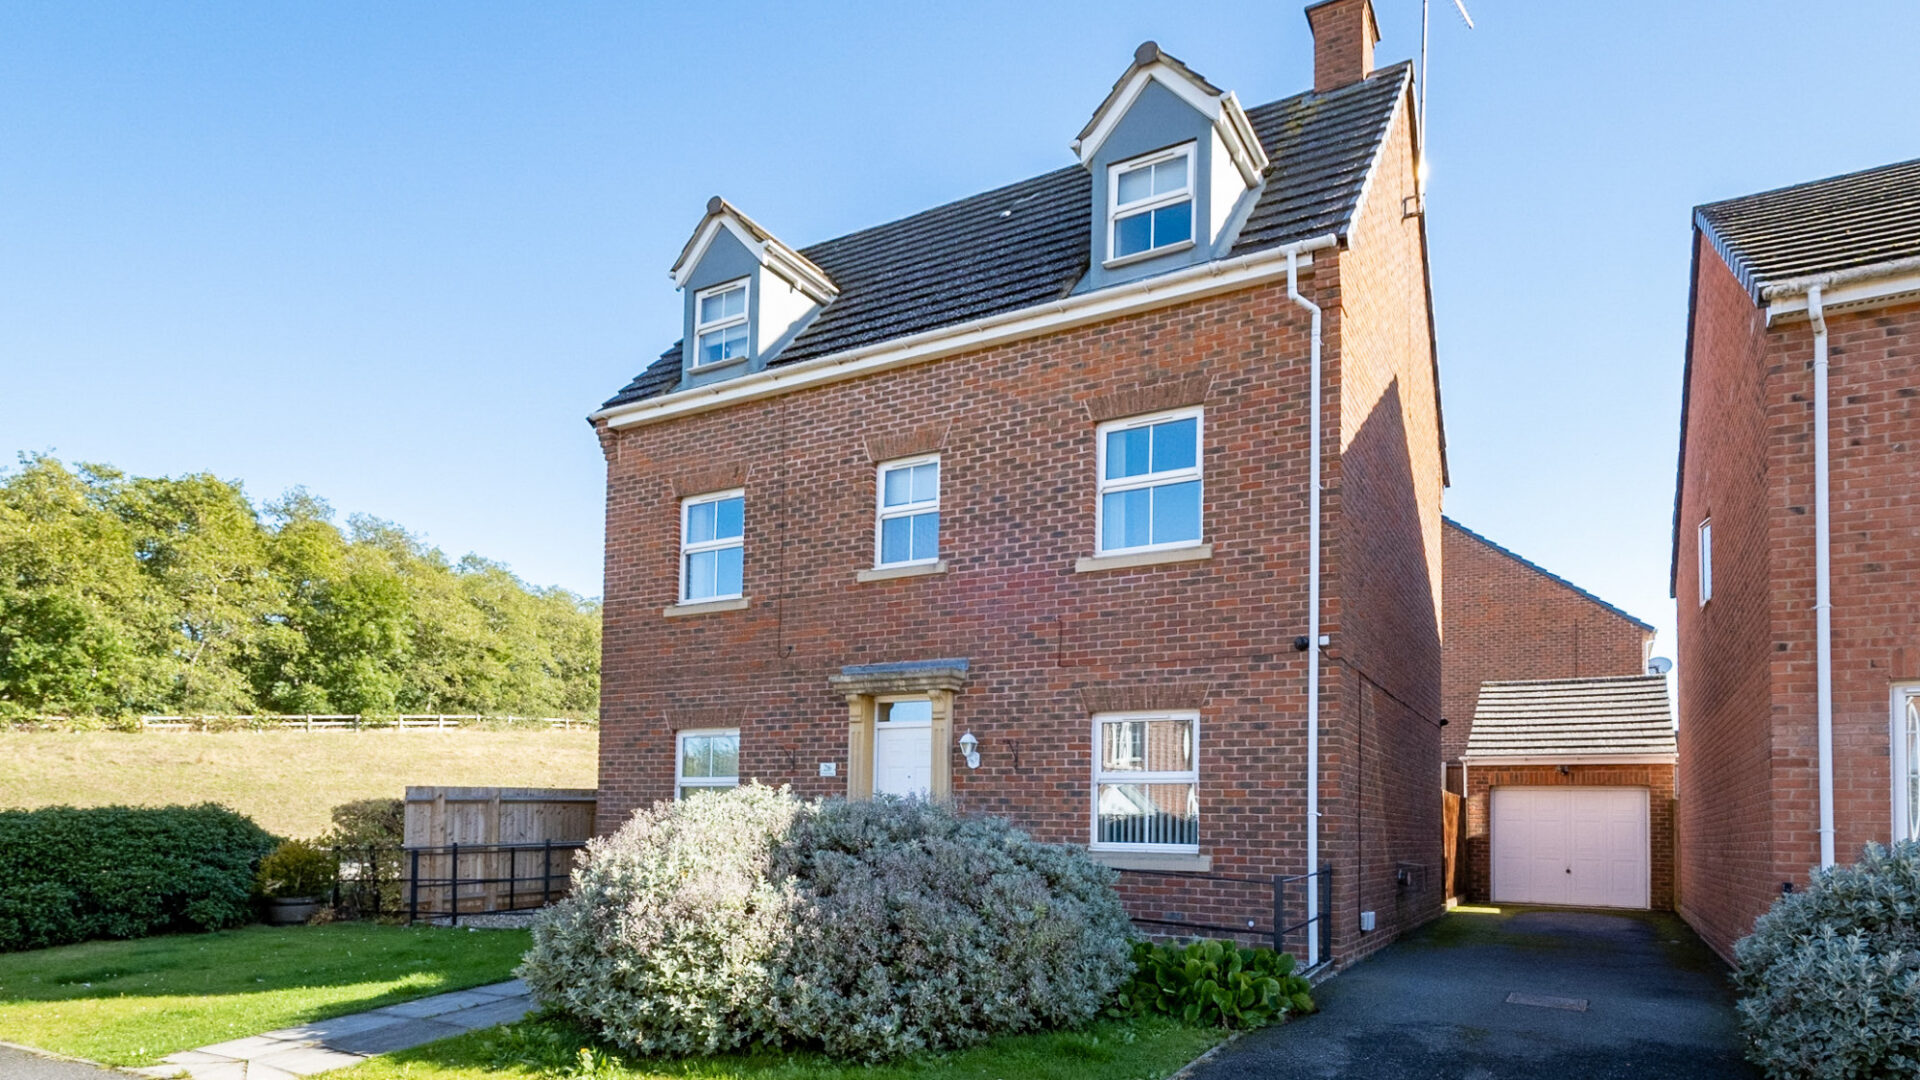 Wren Close, Corby for sale with Mr and Mrs Clarke estate agent